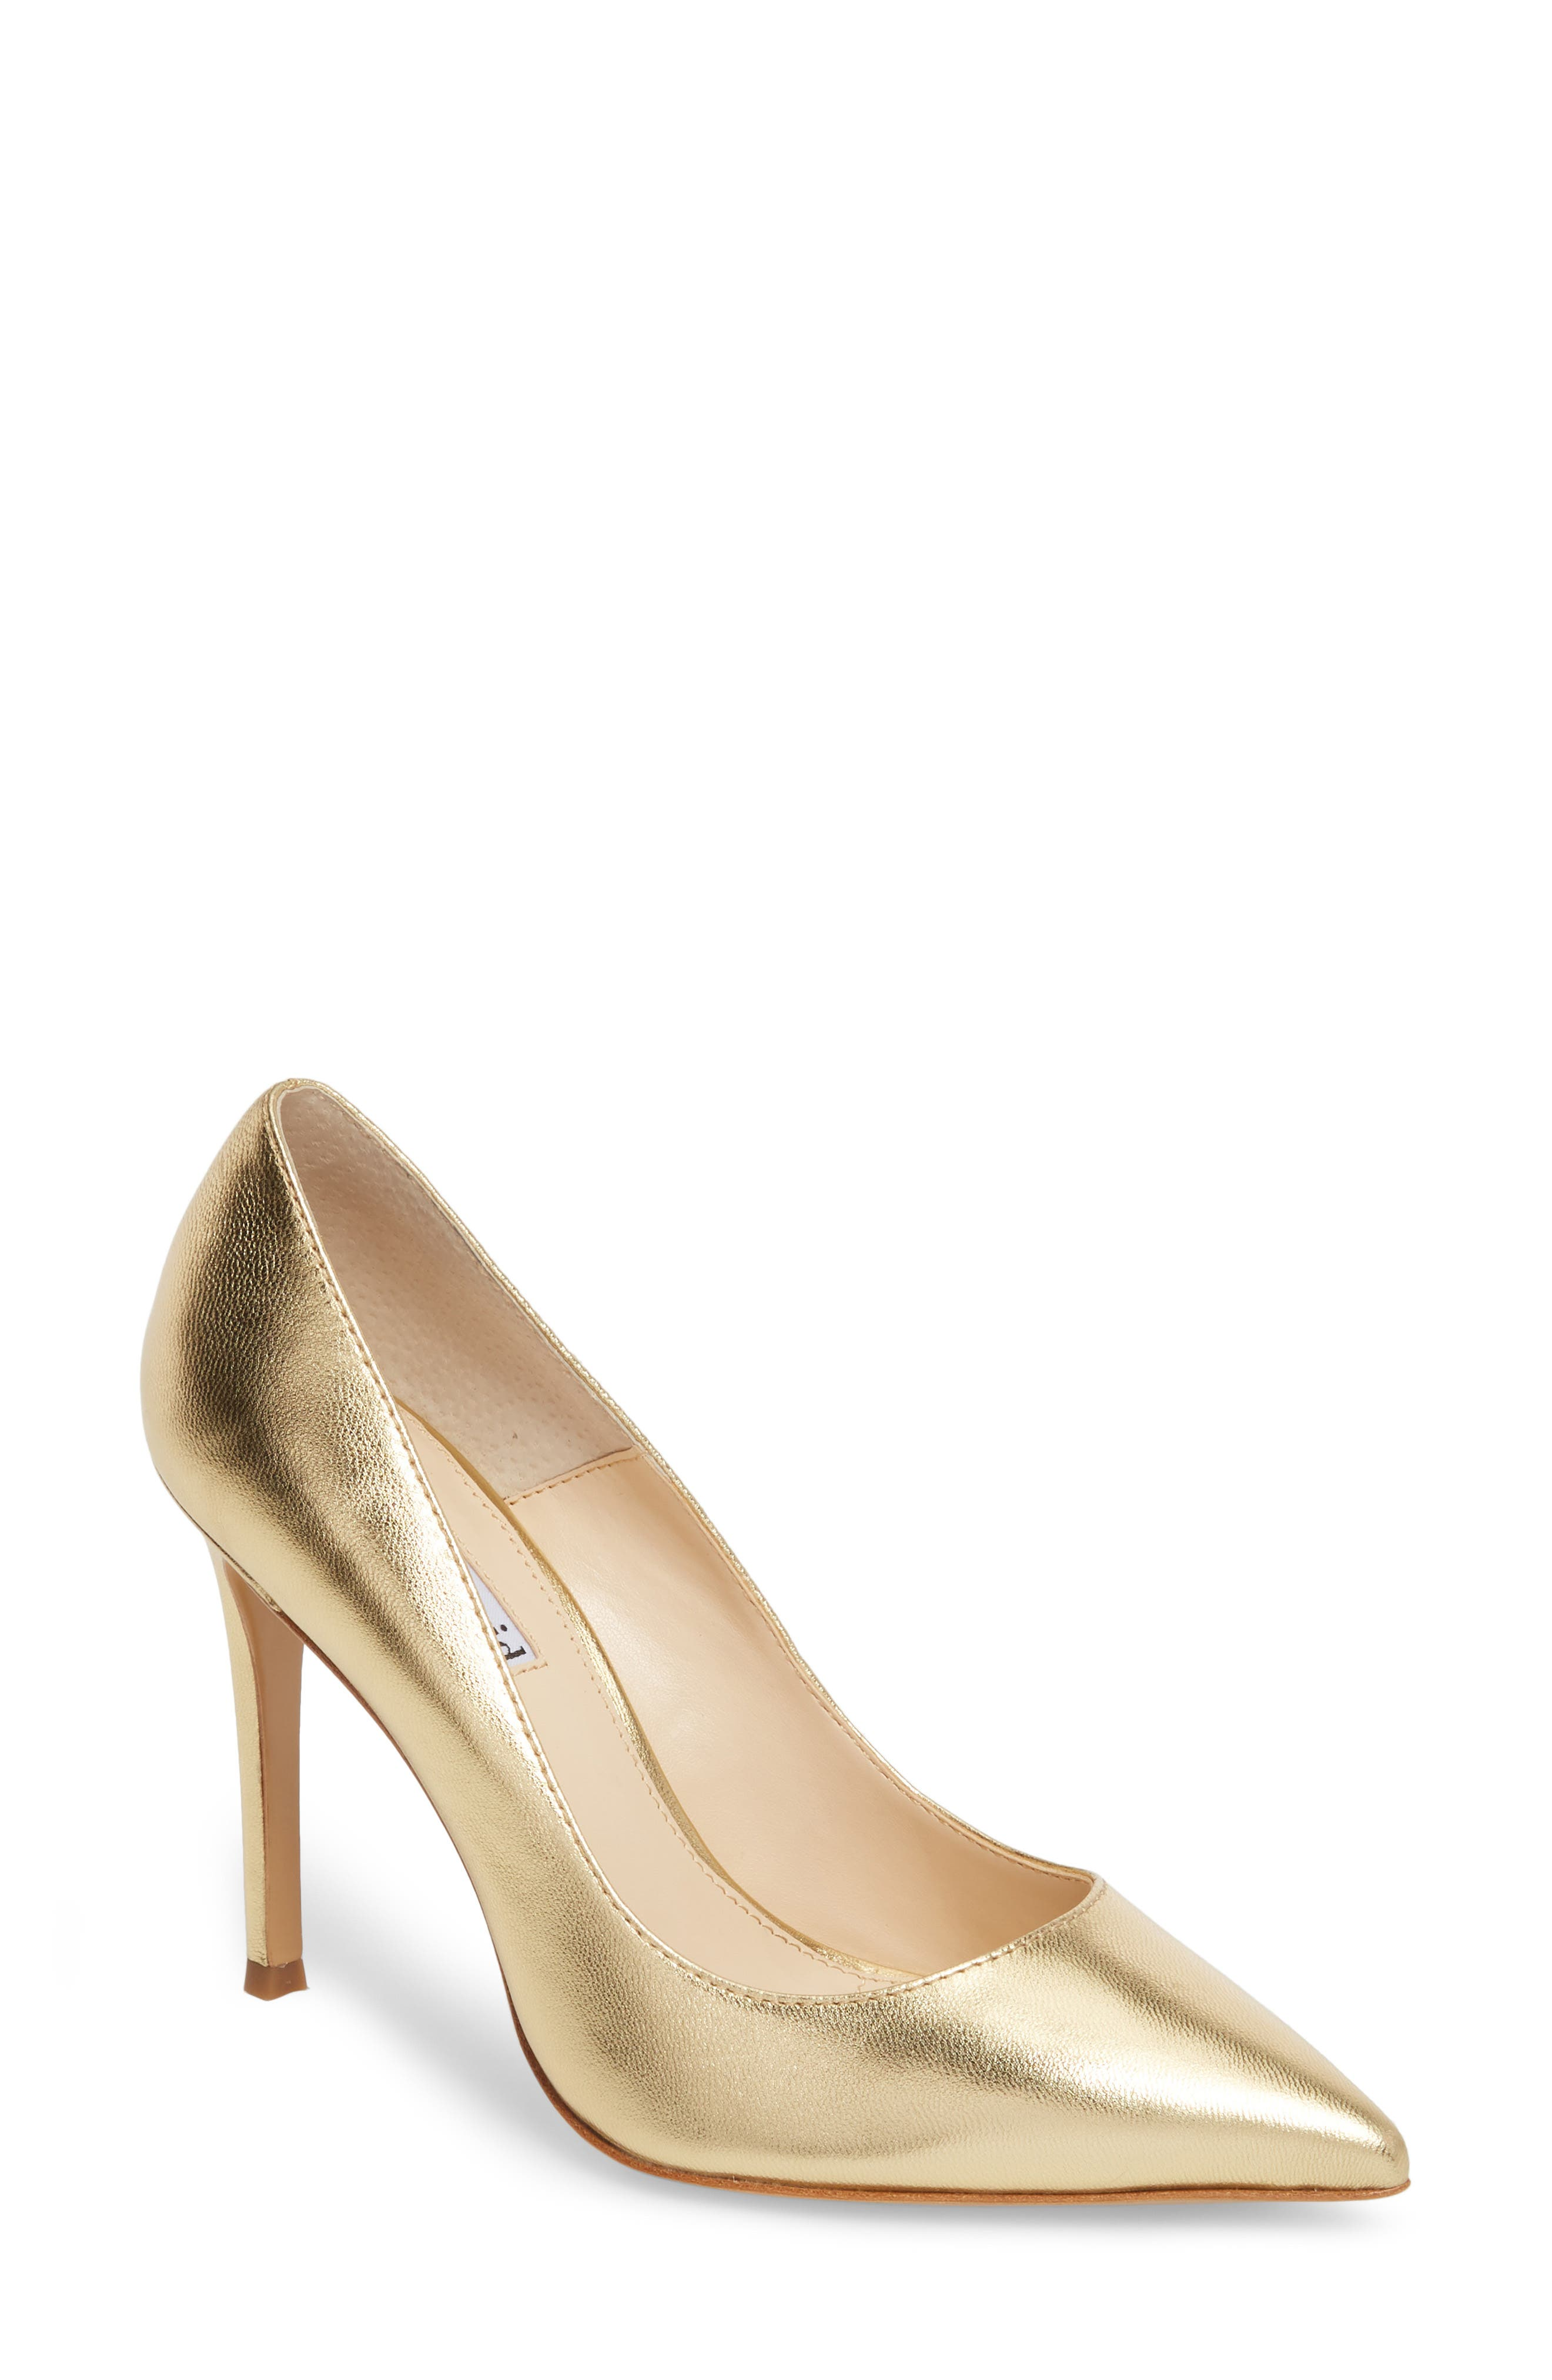 CHARLES DAVID, Calessi Pointy Toe Pump, Main thumbnail 1, color, GOLD LEATHER